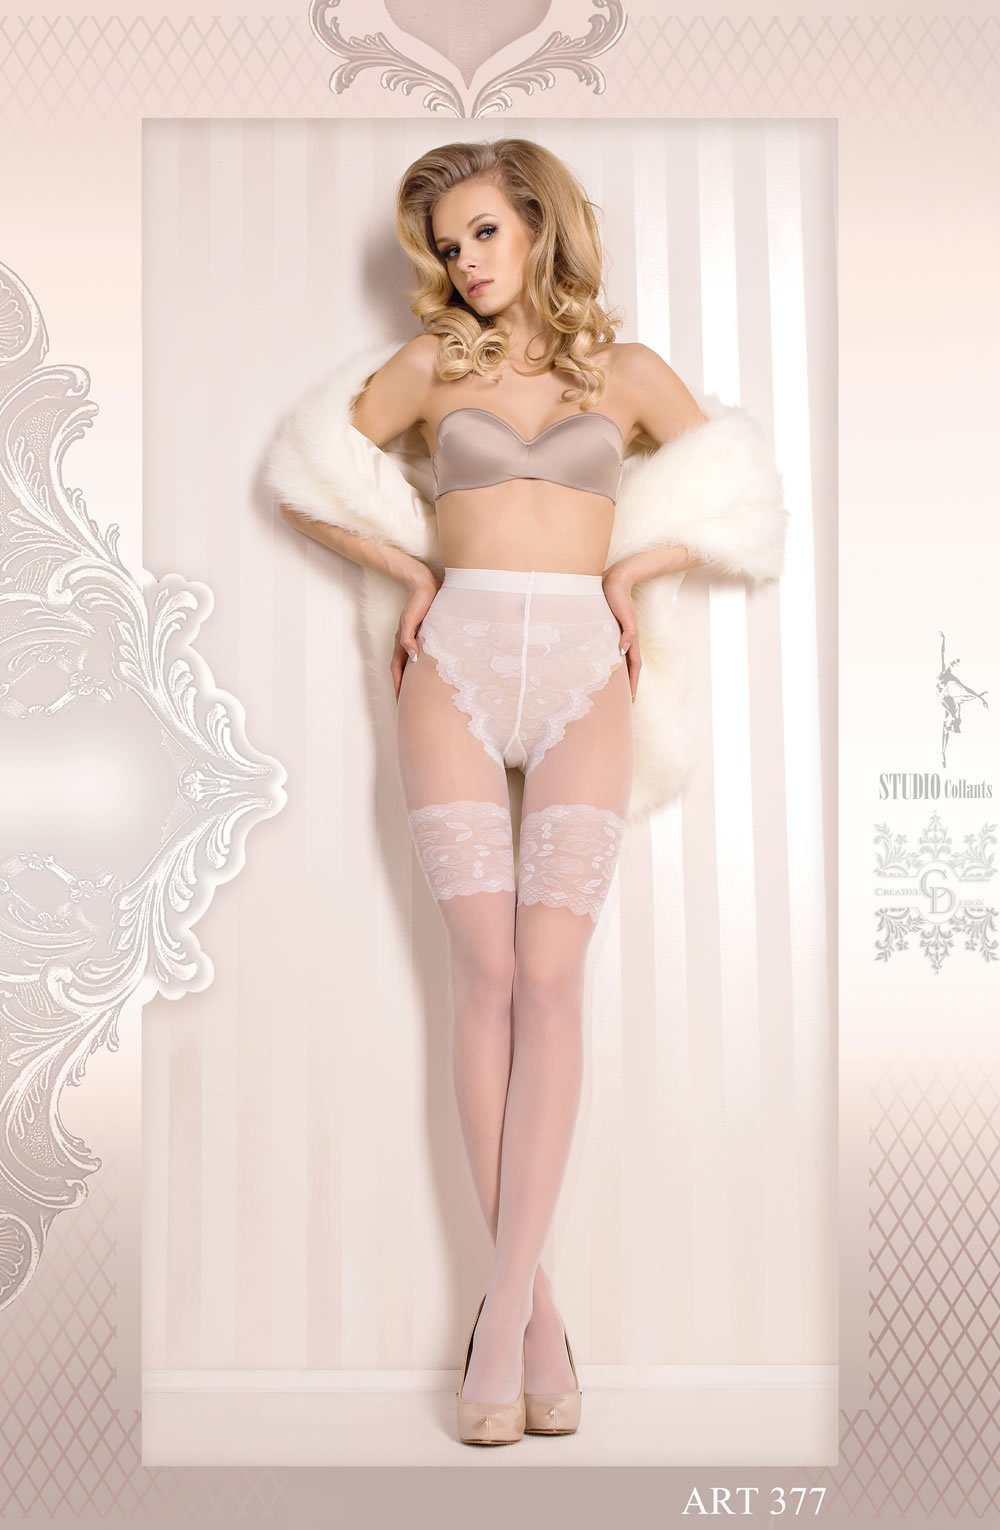 Ballerina 377 Tights Bianco (White) - Lingerie Best Lingerie